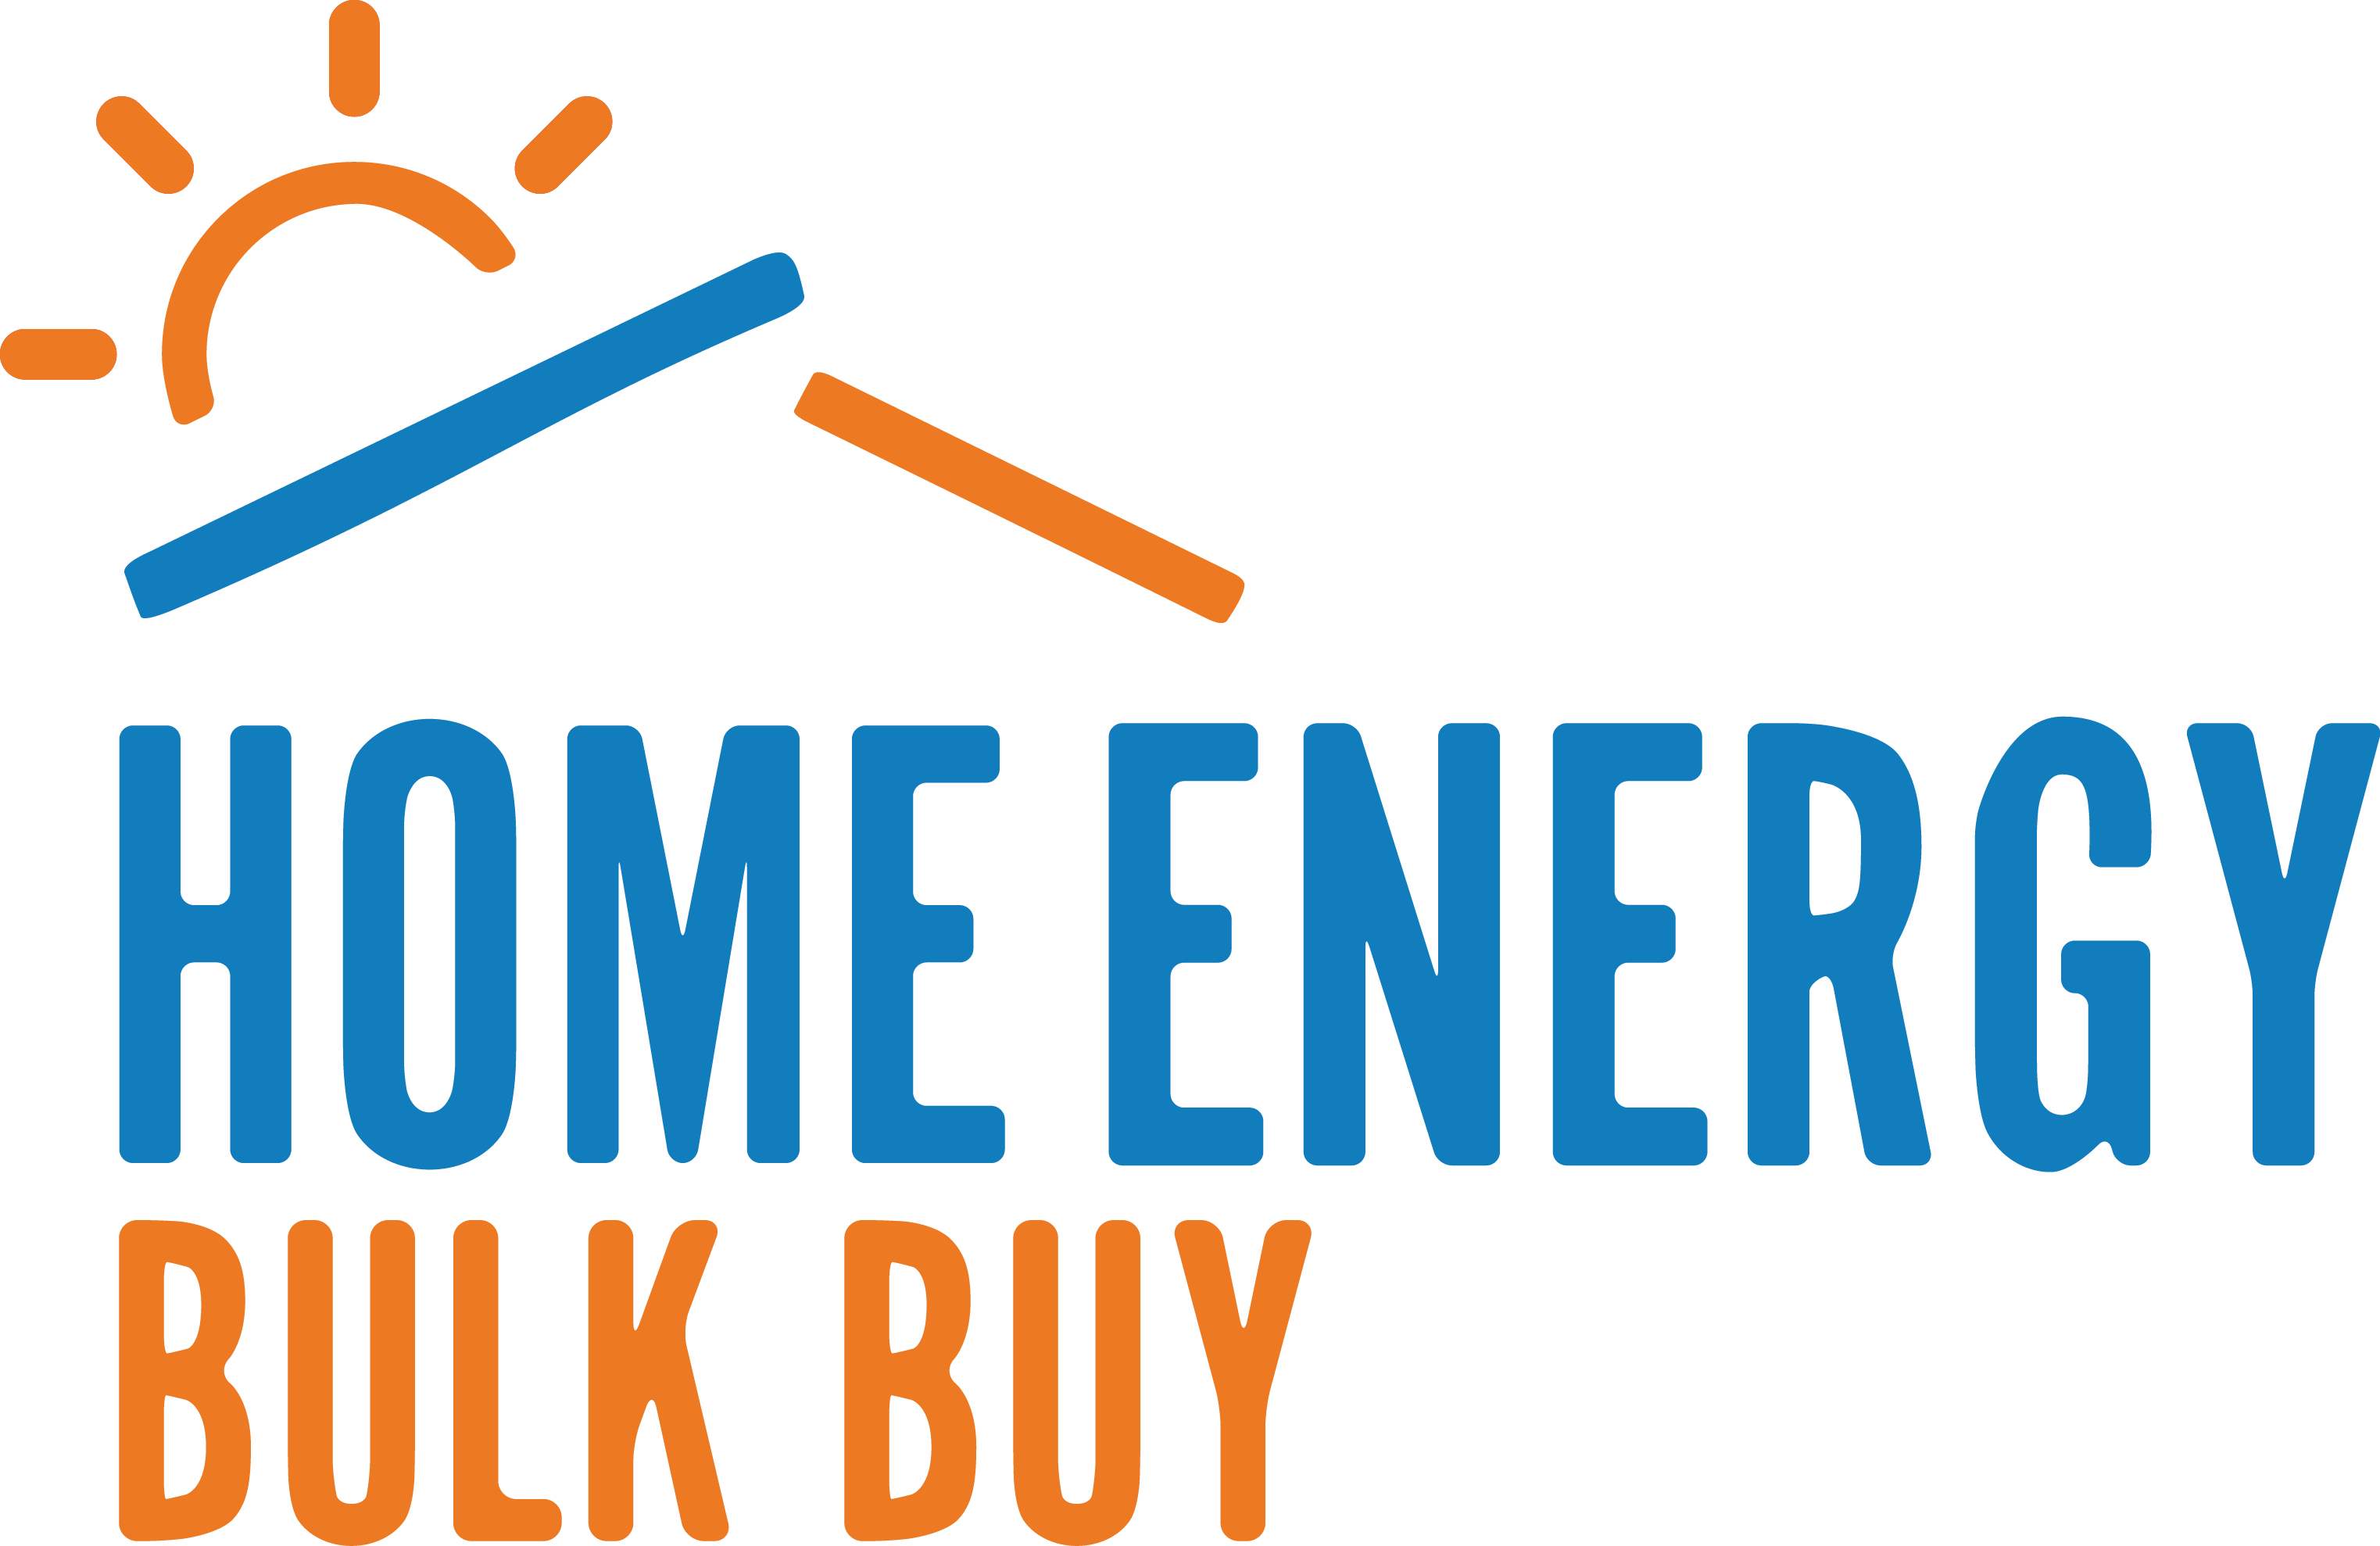 home_energy_bulk_buy_logo.png